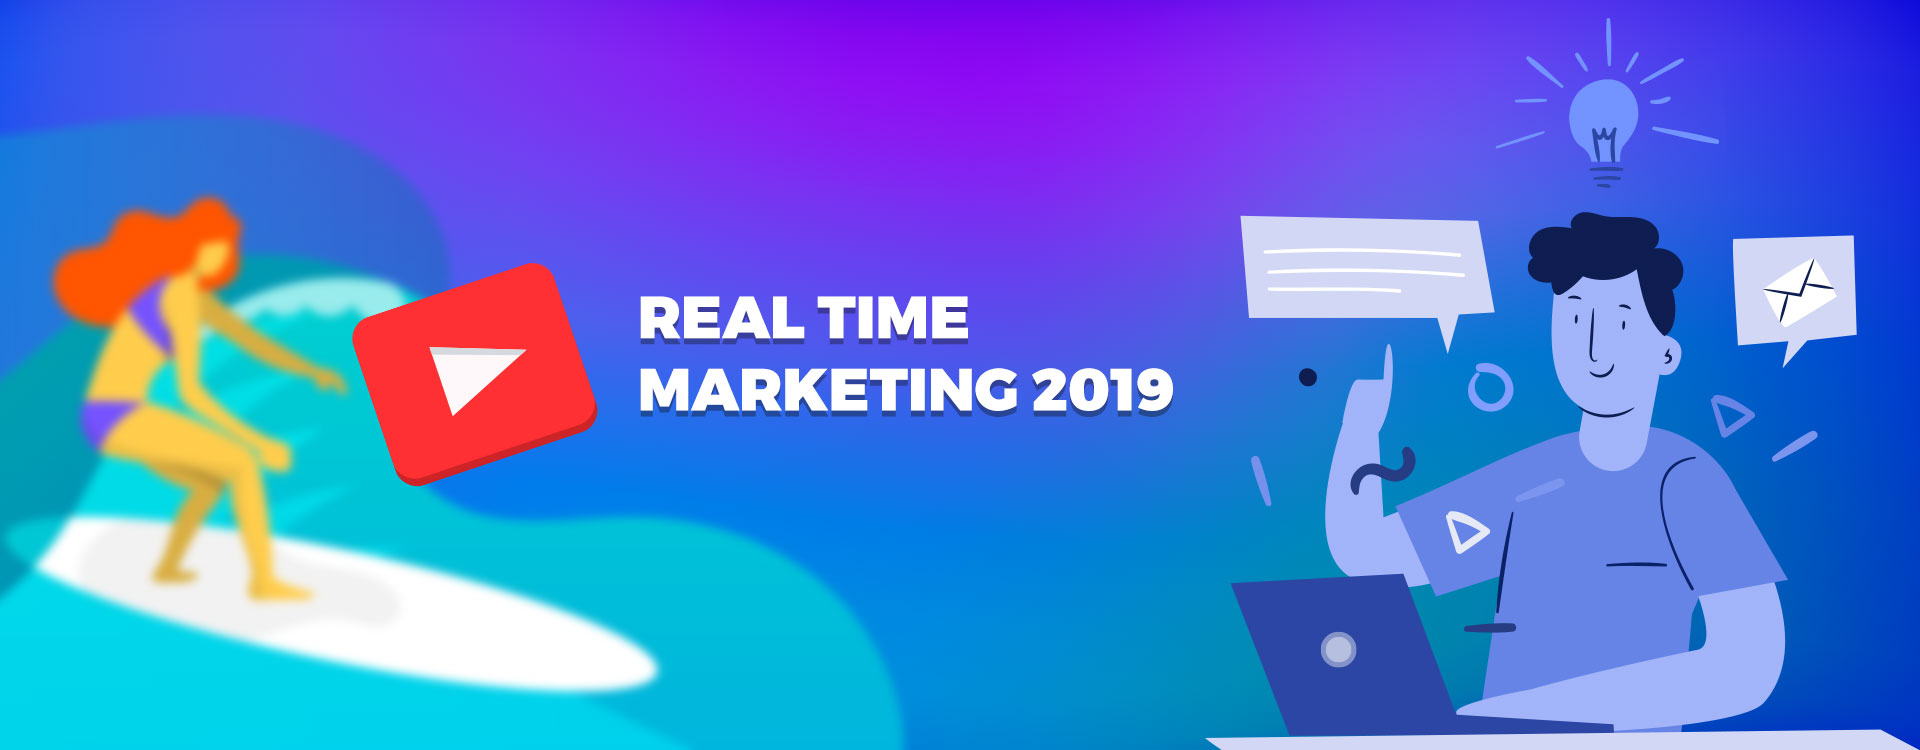 Real time marketing 2019